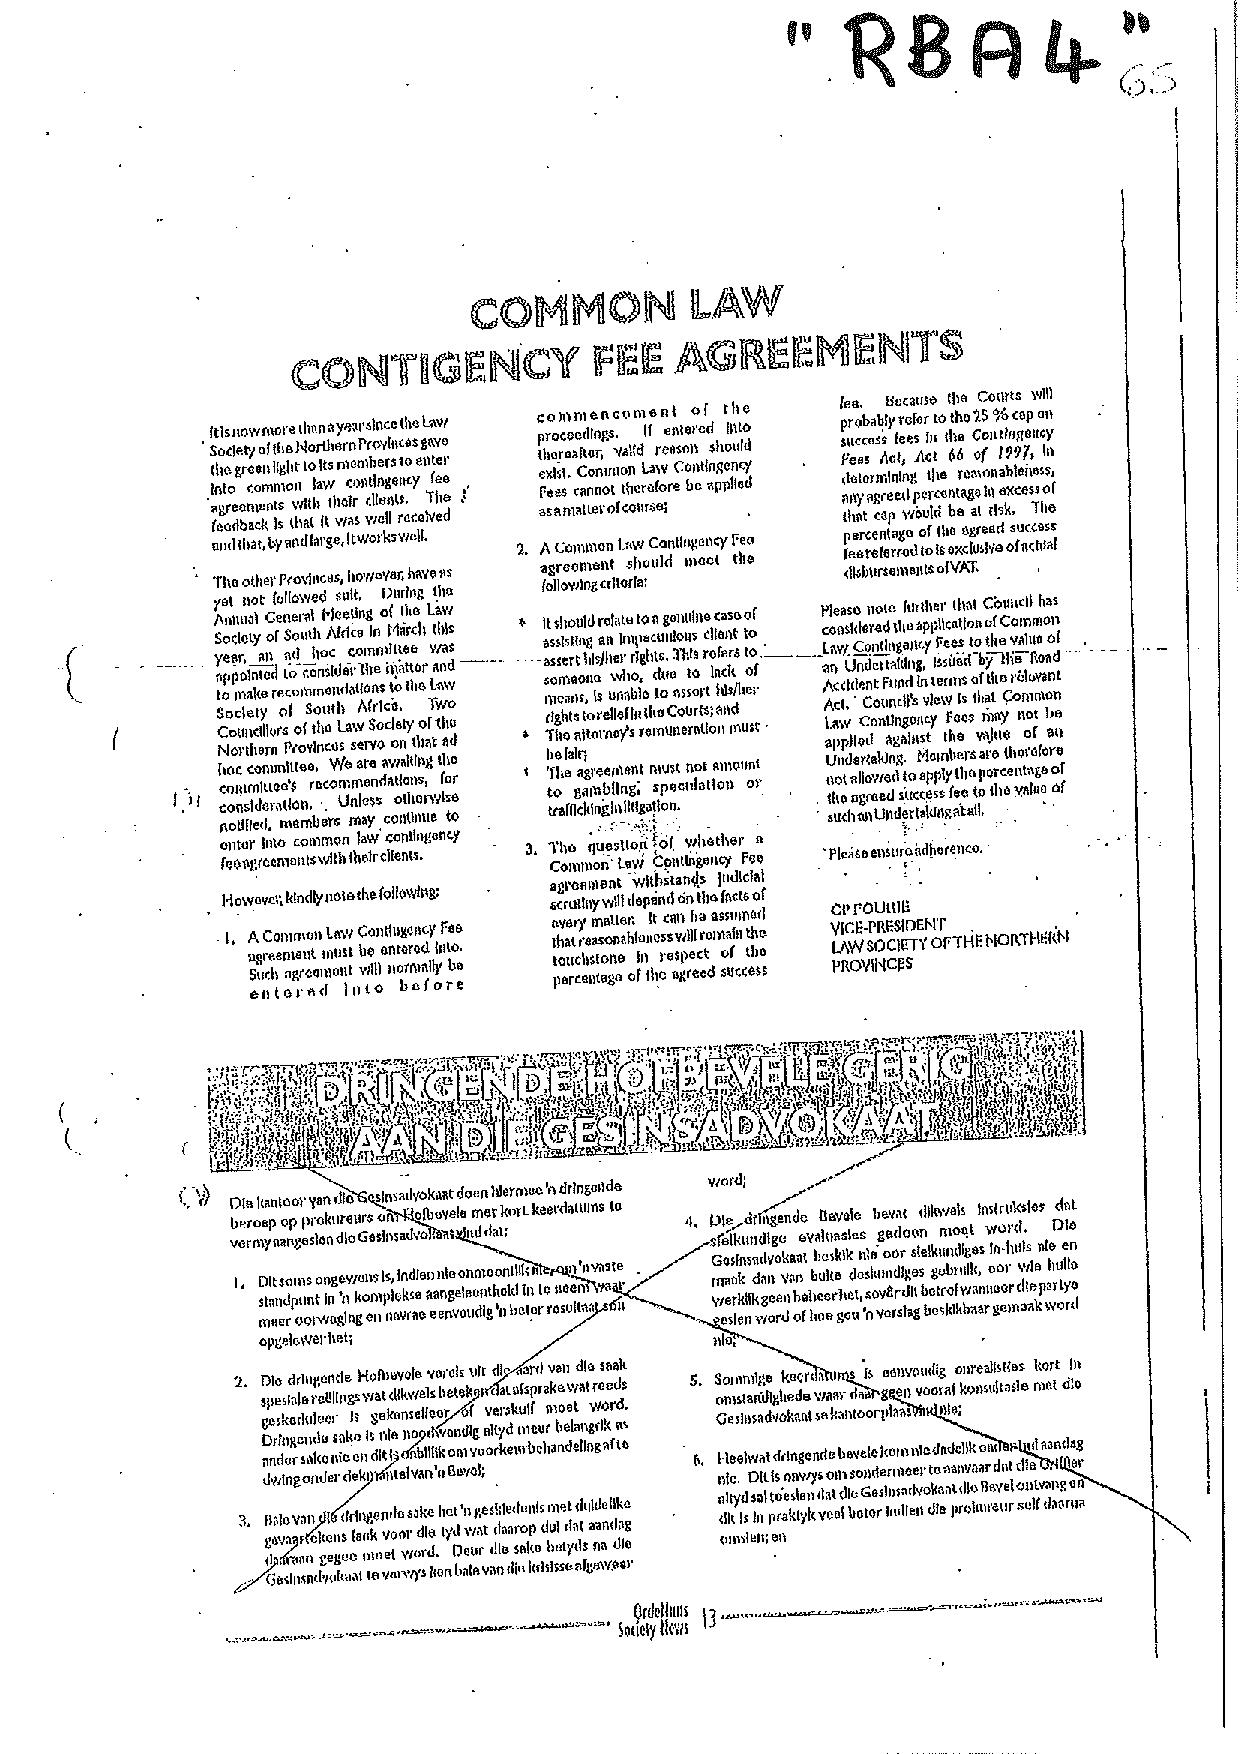 Annexure RBA4 Common Law Contingency Fee Agreements Further confirmation of ruling by LSNP page 001